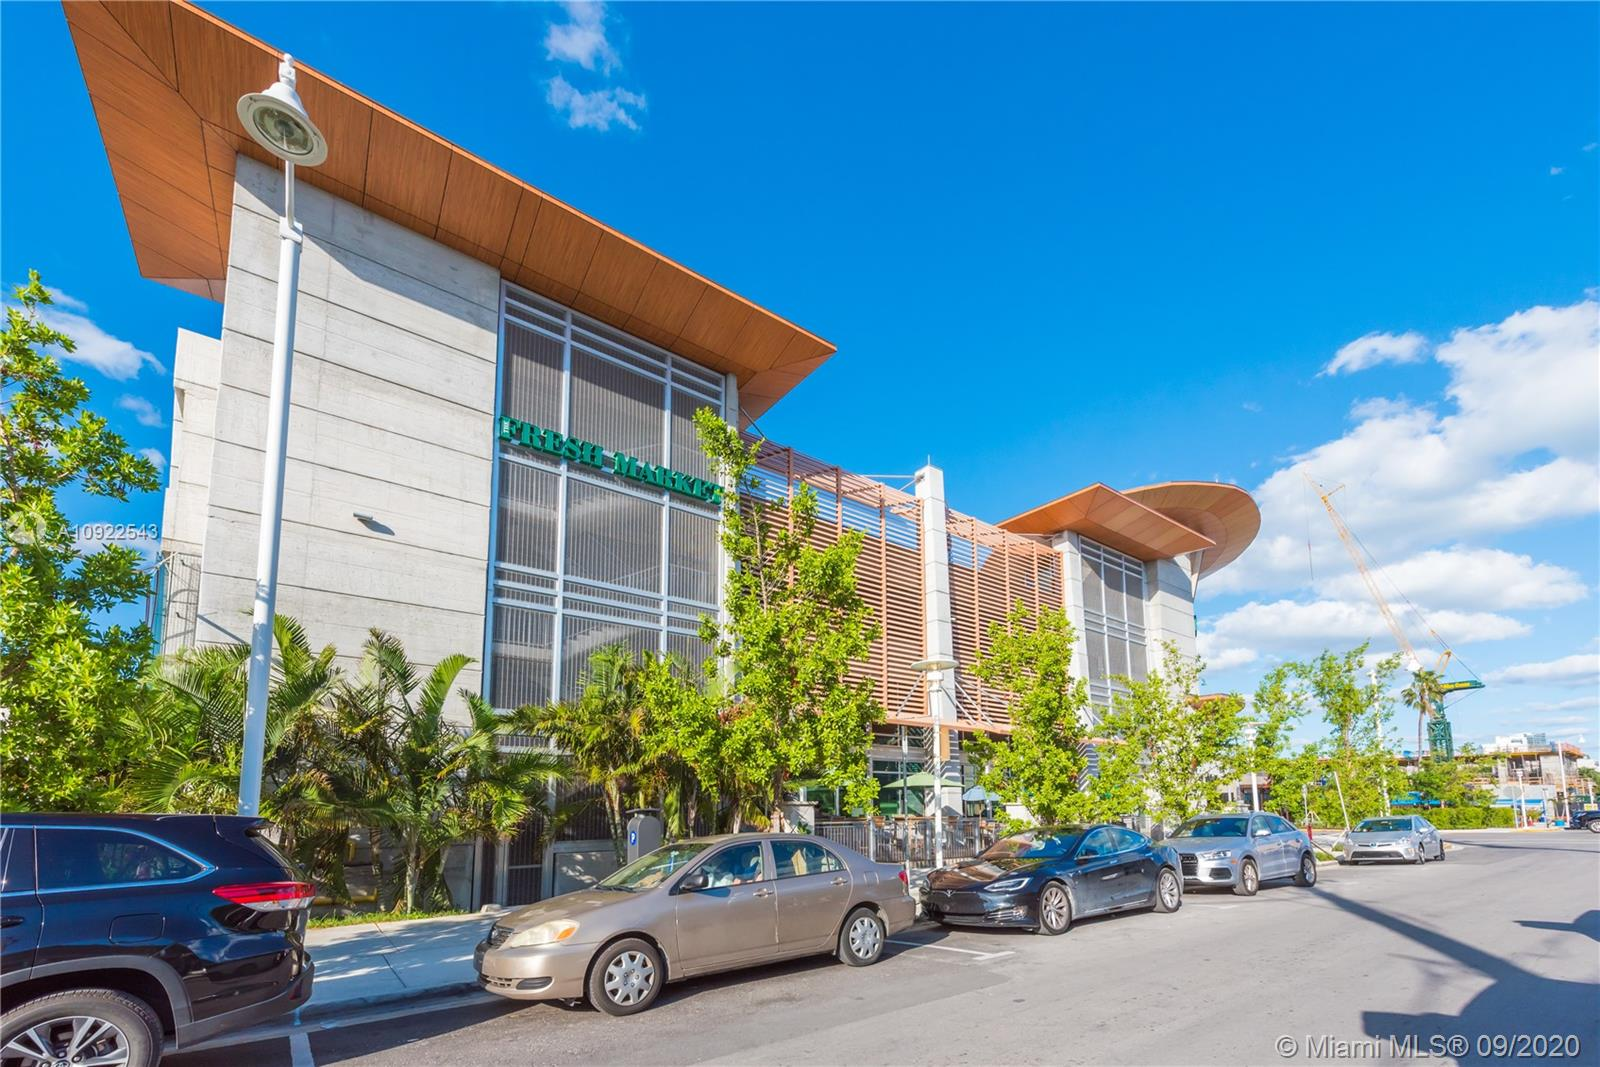 Photo of 1410 W 24th St # listing for Sale